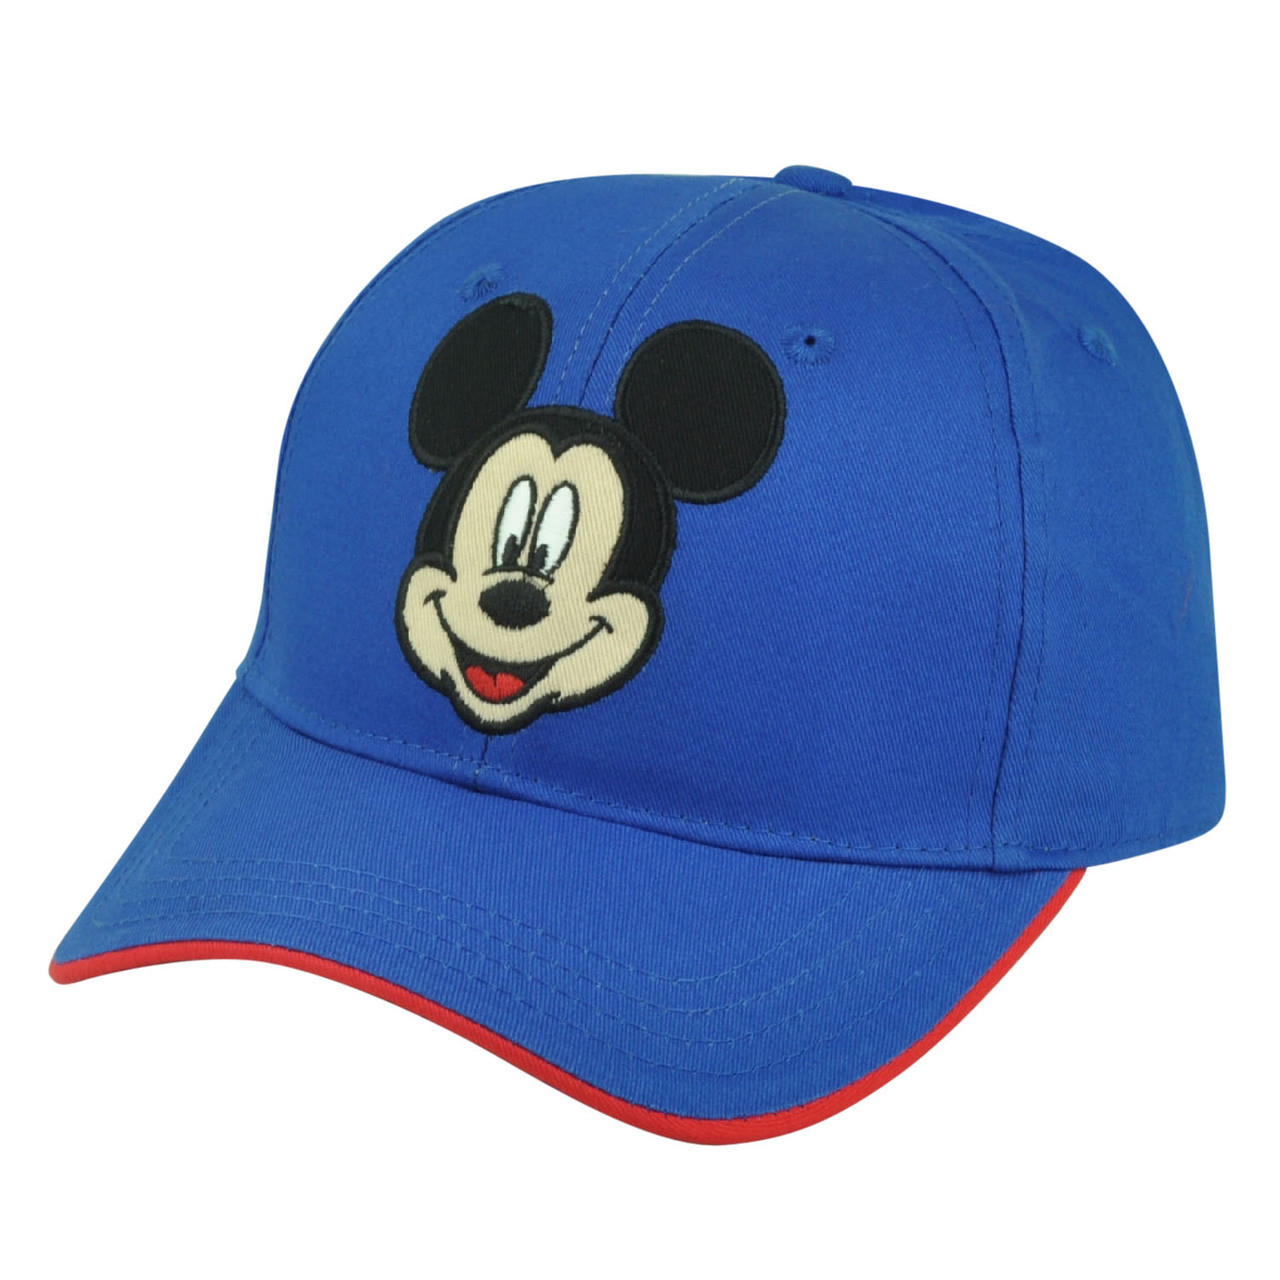 434efbcf Disney Mickey Mouse Character Hat Cap Velcro Magical Cartoon Classic Tv Show